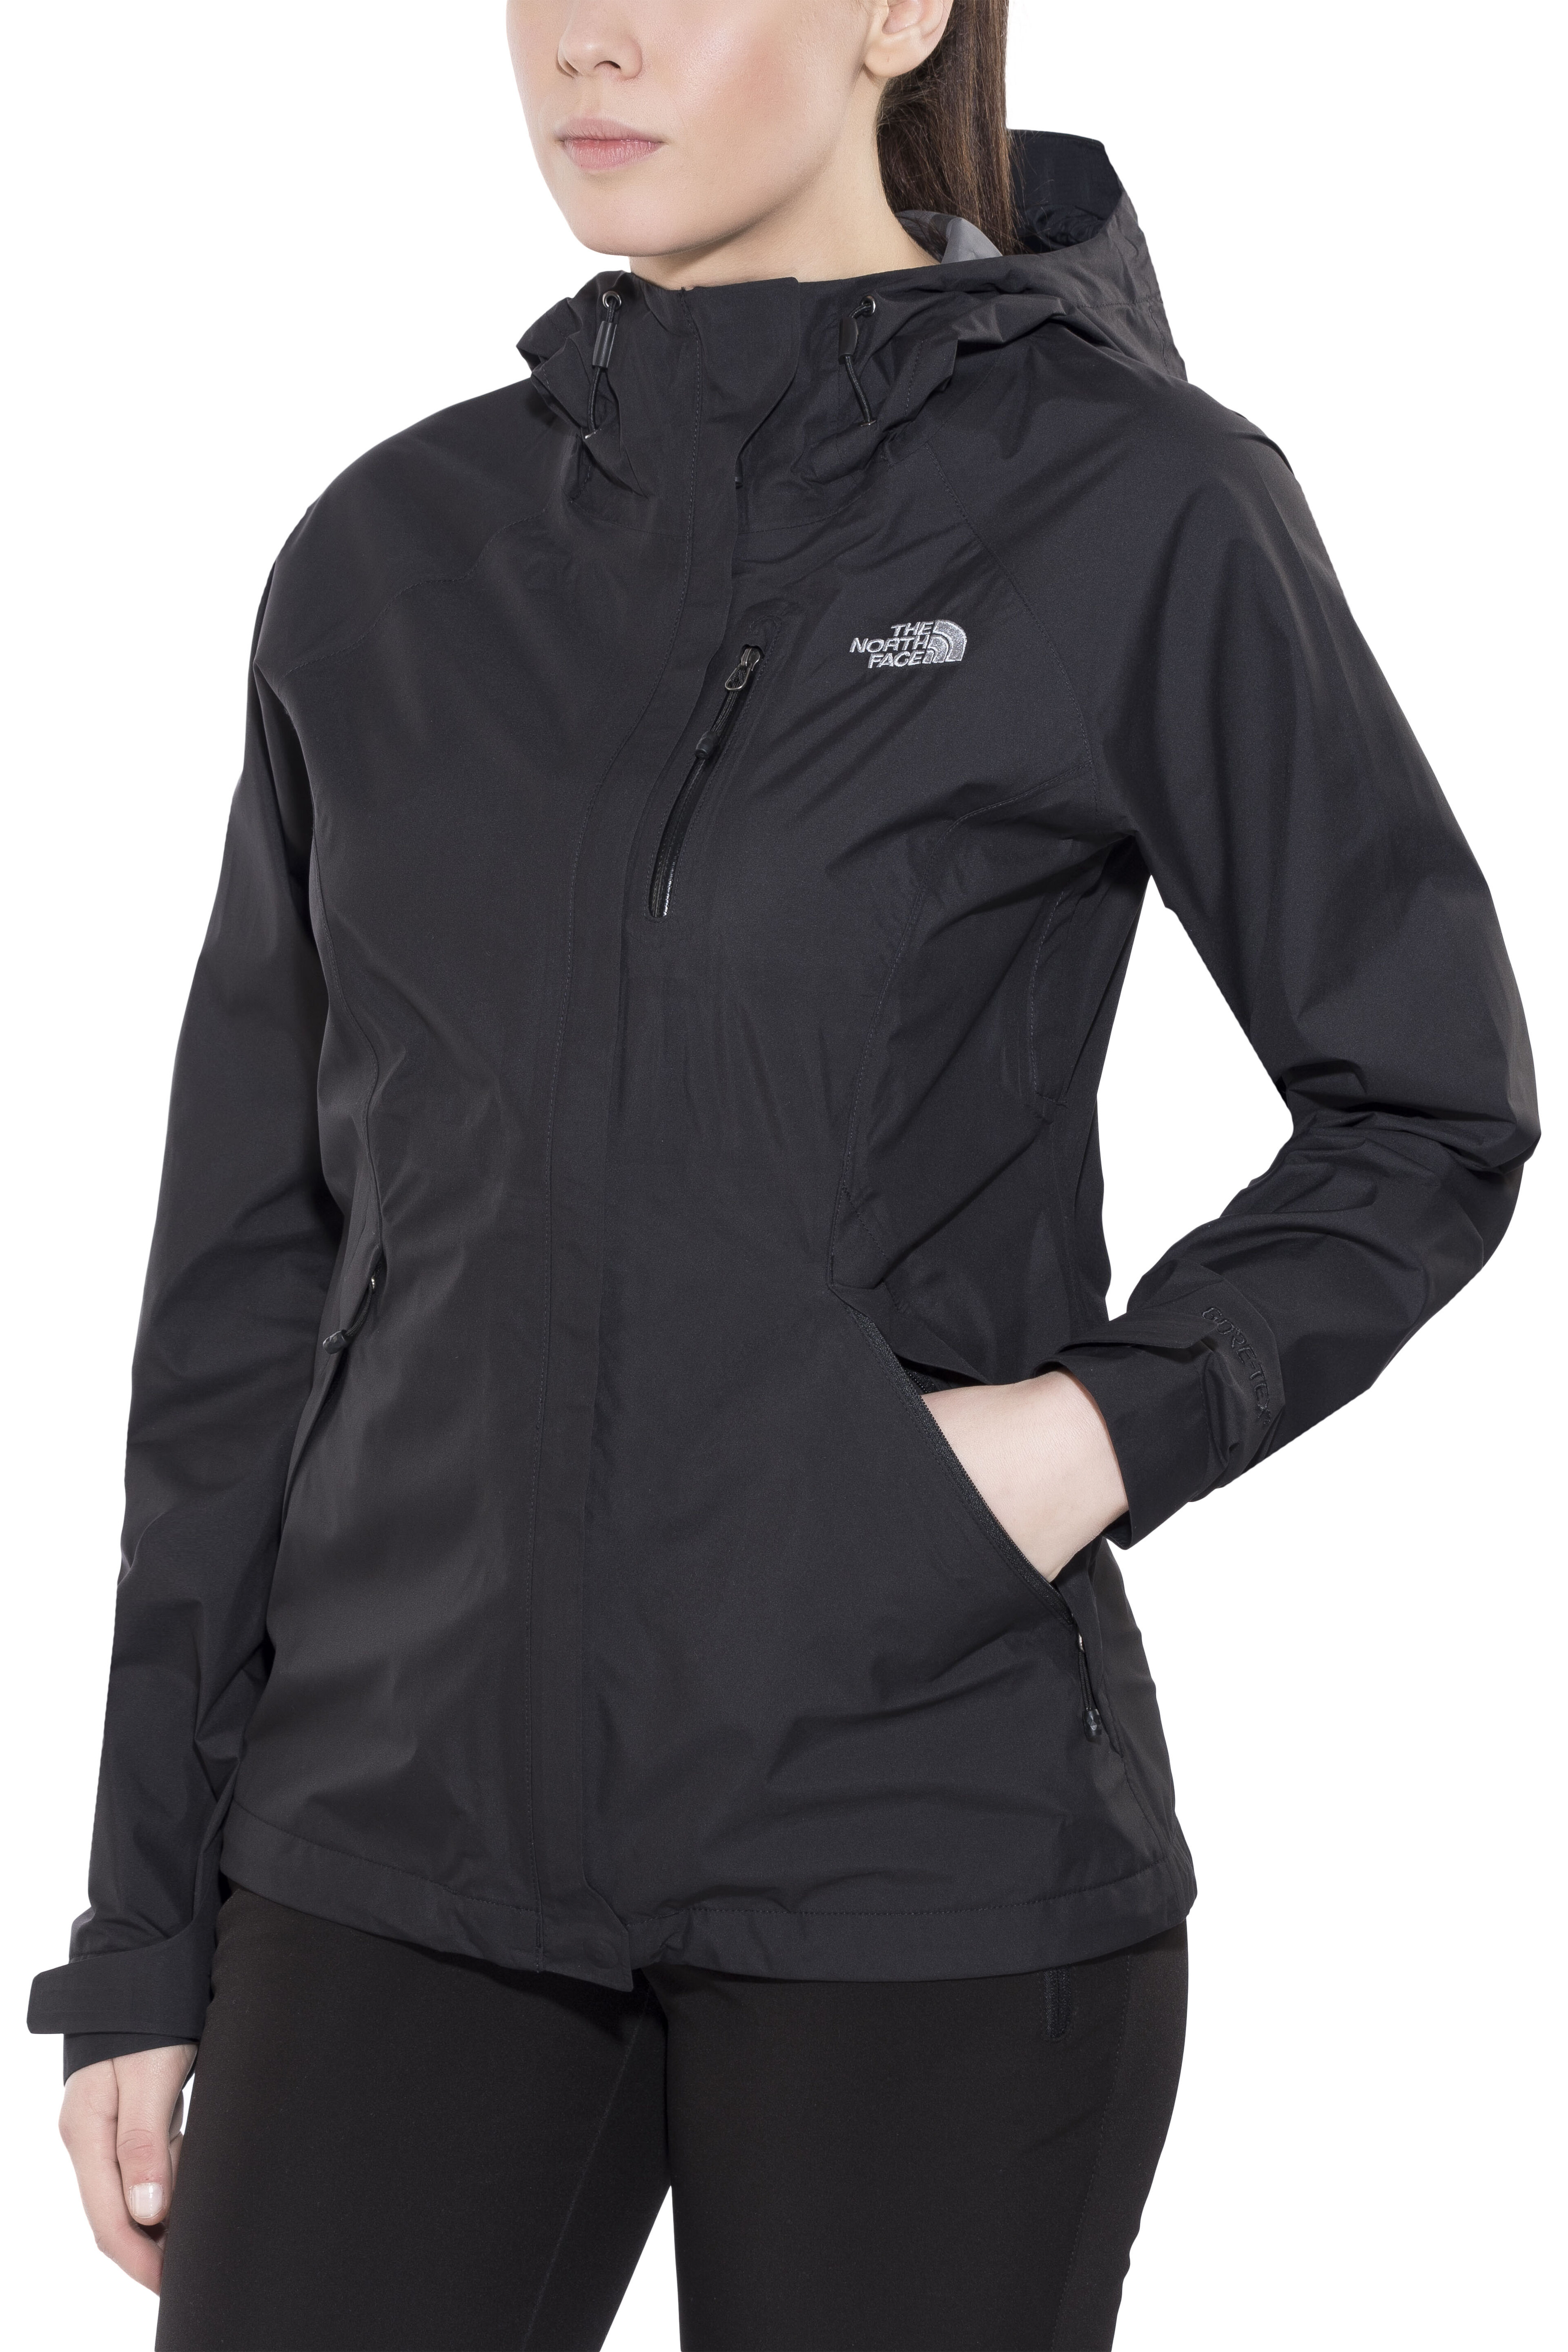 The North Face Dryzzle - Veste Femme - noir sur CAMPZ ! 669a8aac4f32